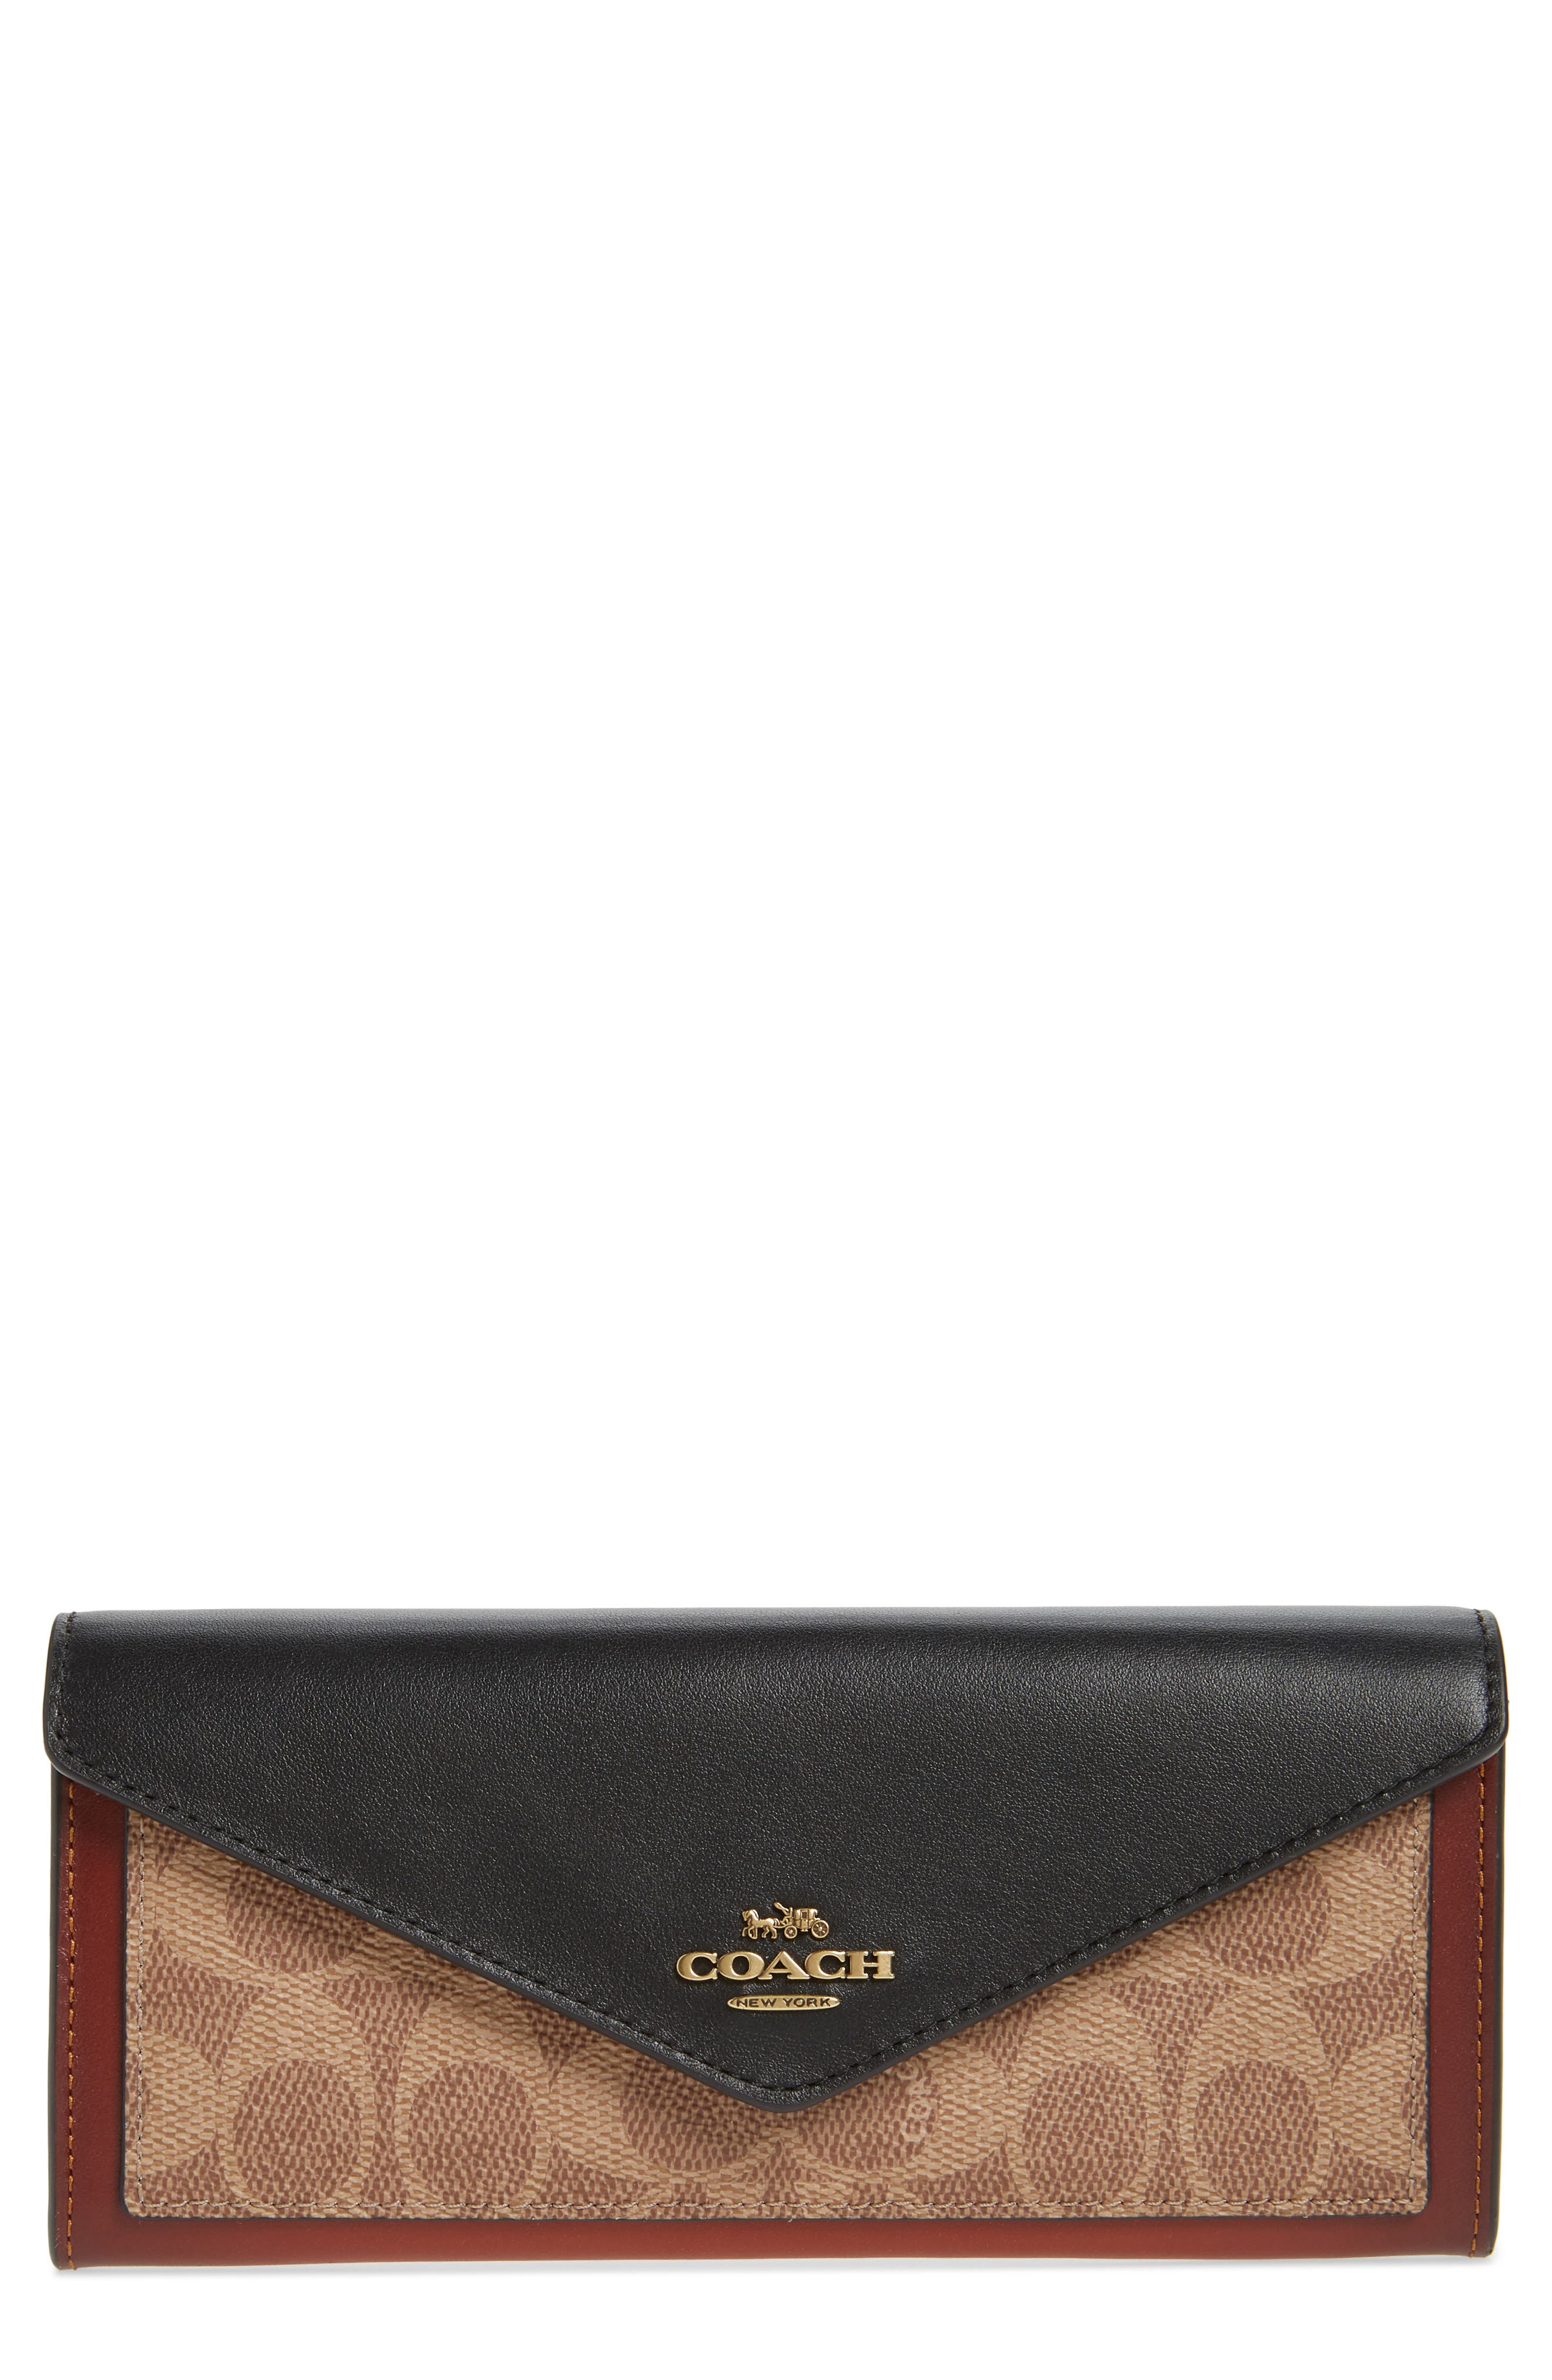 Colorblock Leather & Coated Canvas Wallet, Main, color, TAN BLACK